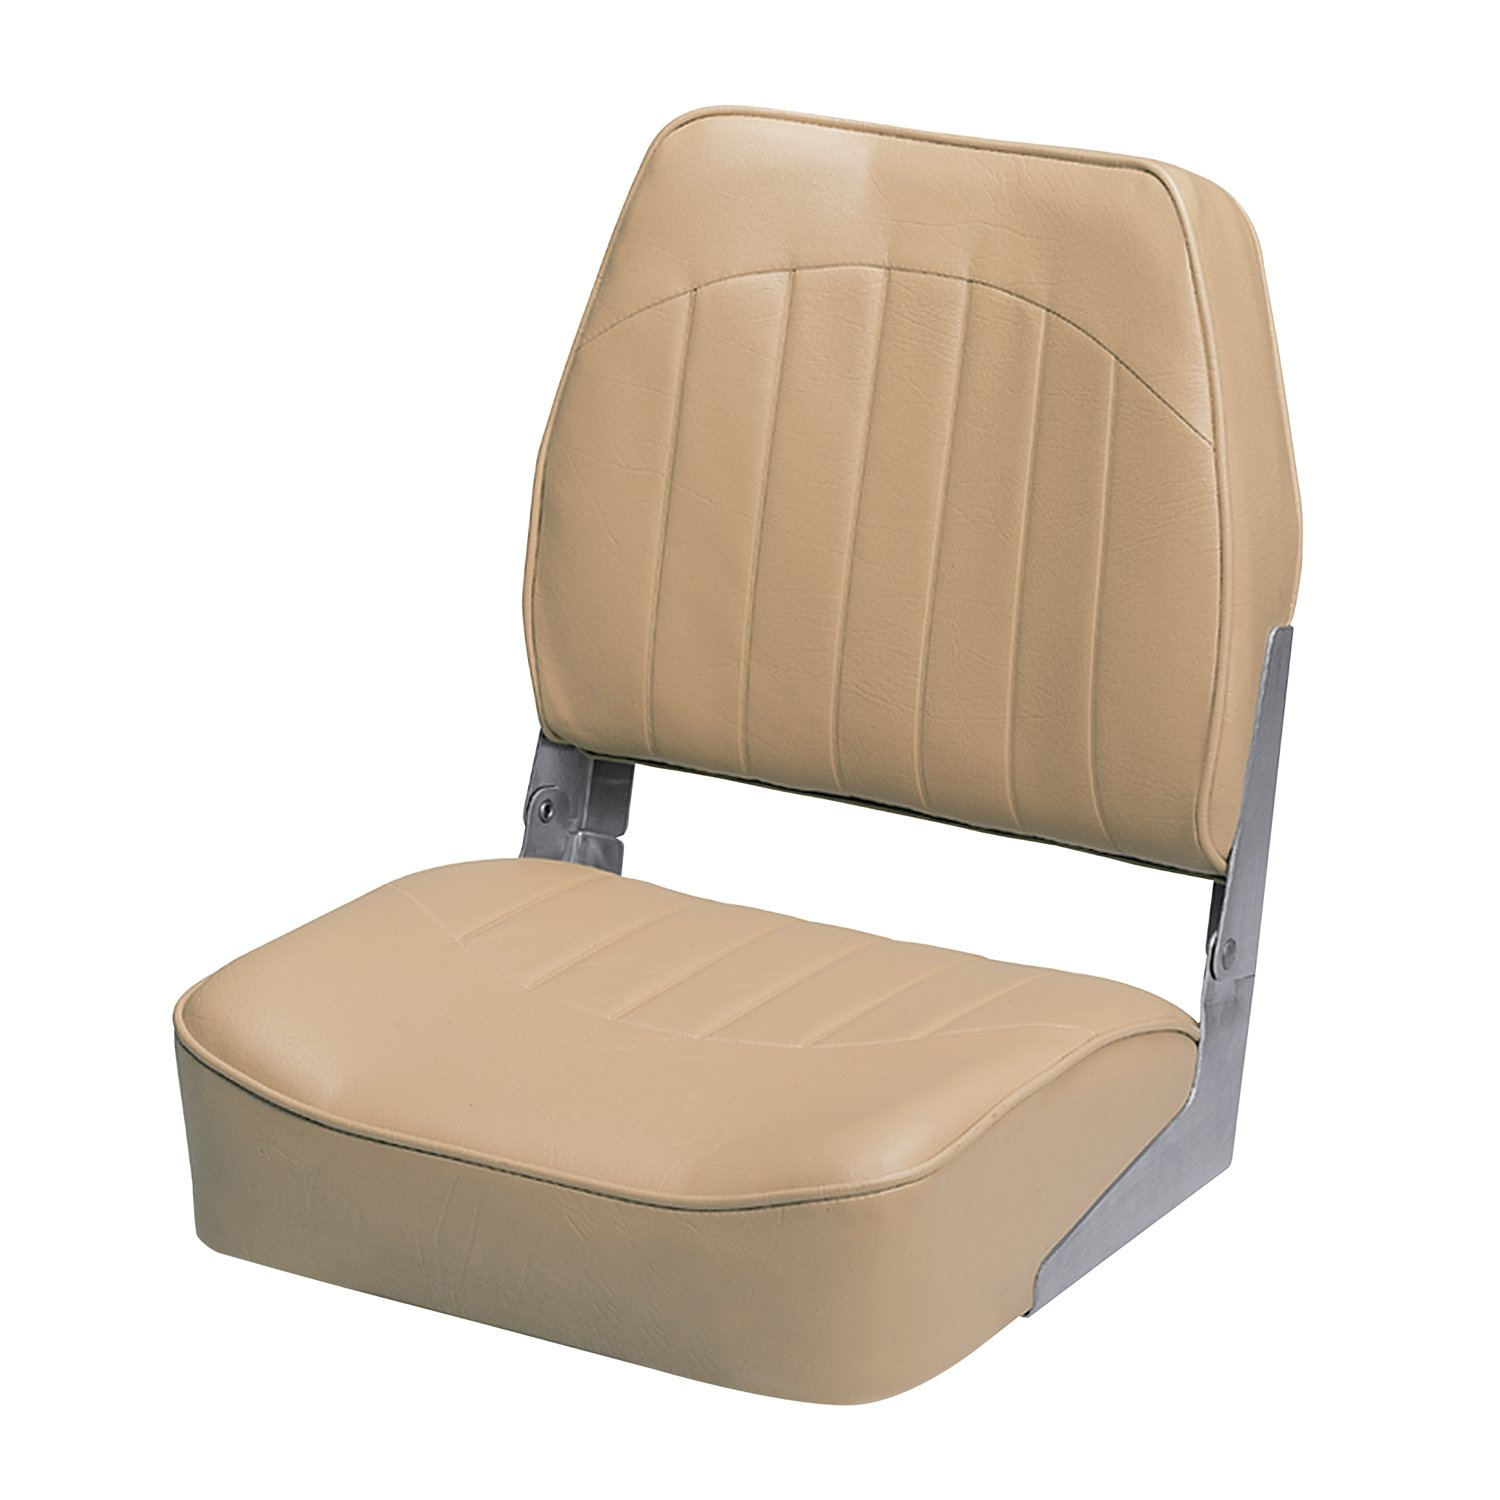 Wise 8WD734PLS-715 Low Back Boat Seat, Sand